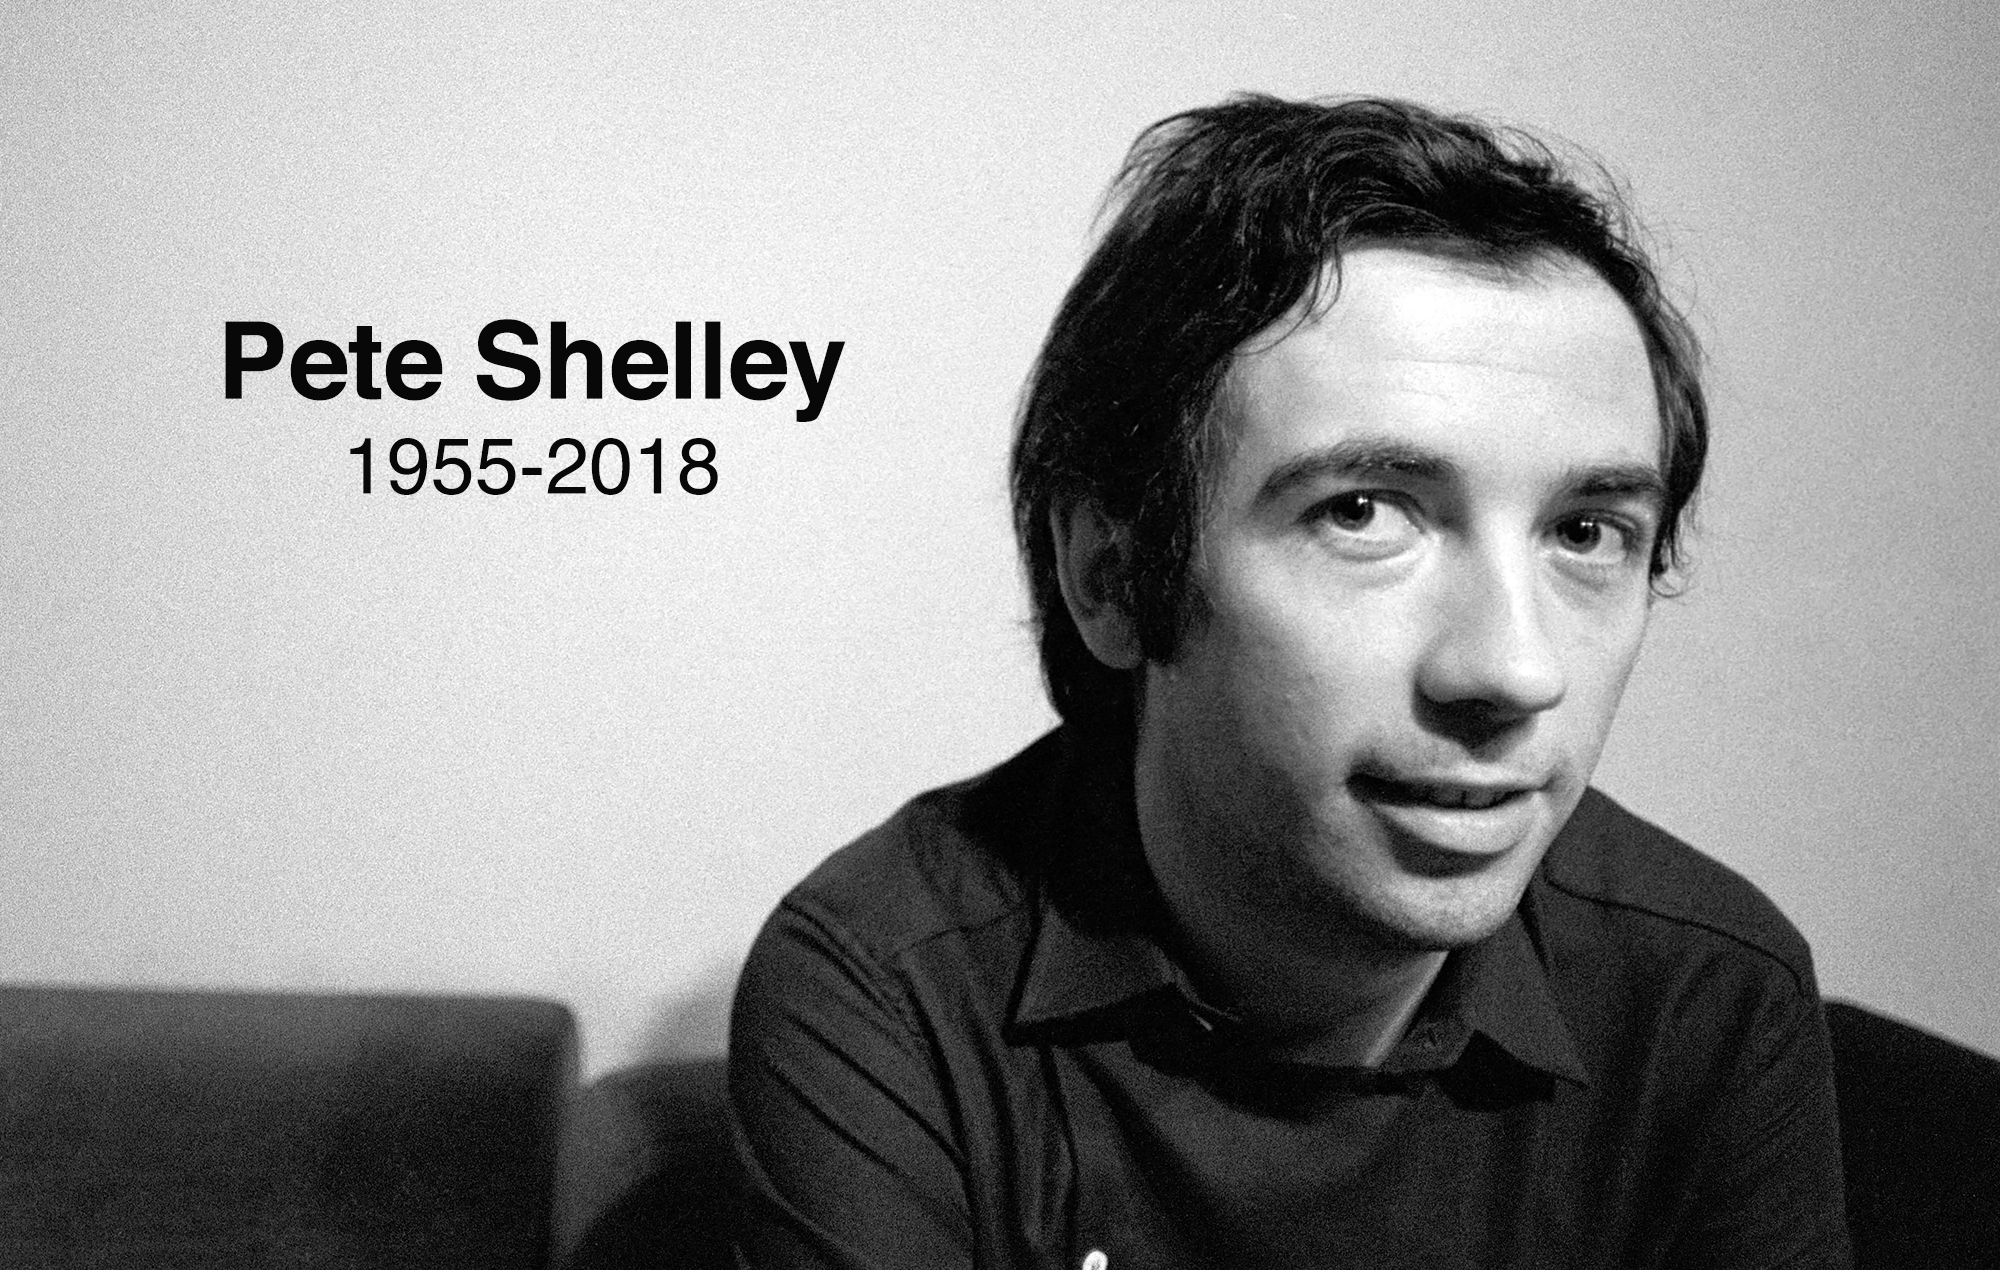 Pete Shelley: A Musical Pioneer Who Gave Us Lusty, Essential Punk Pop